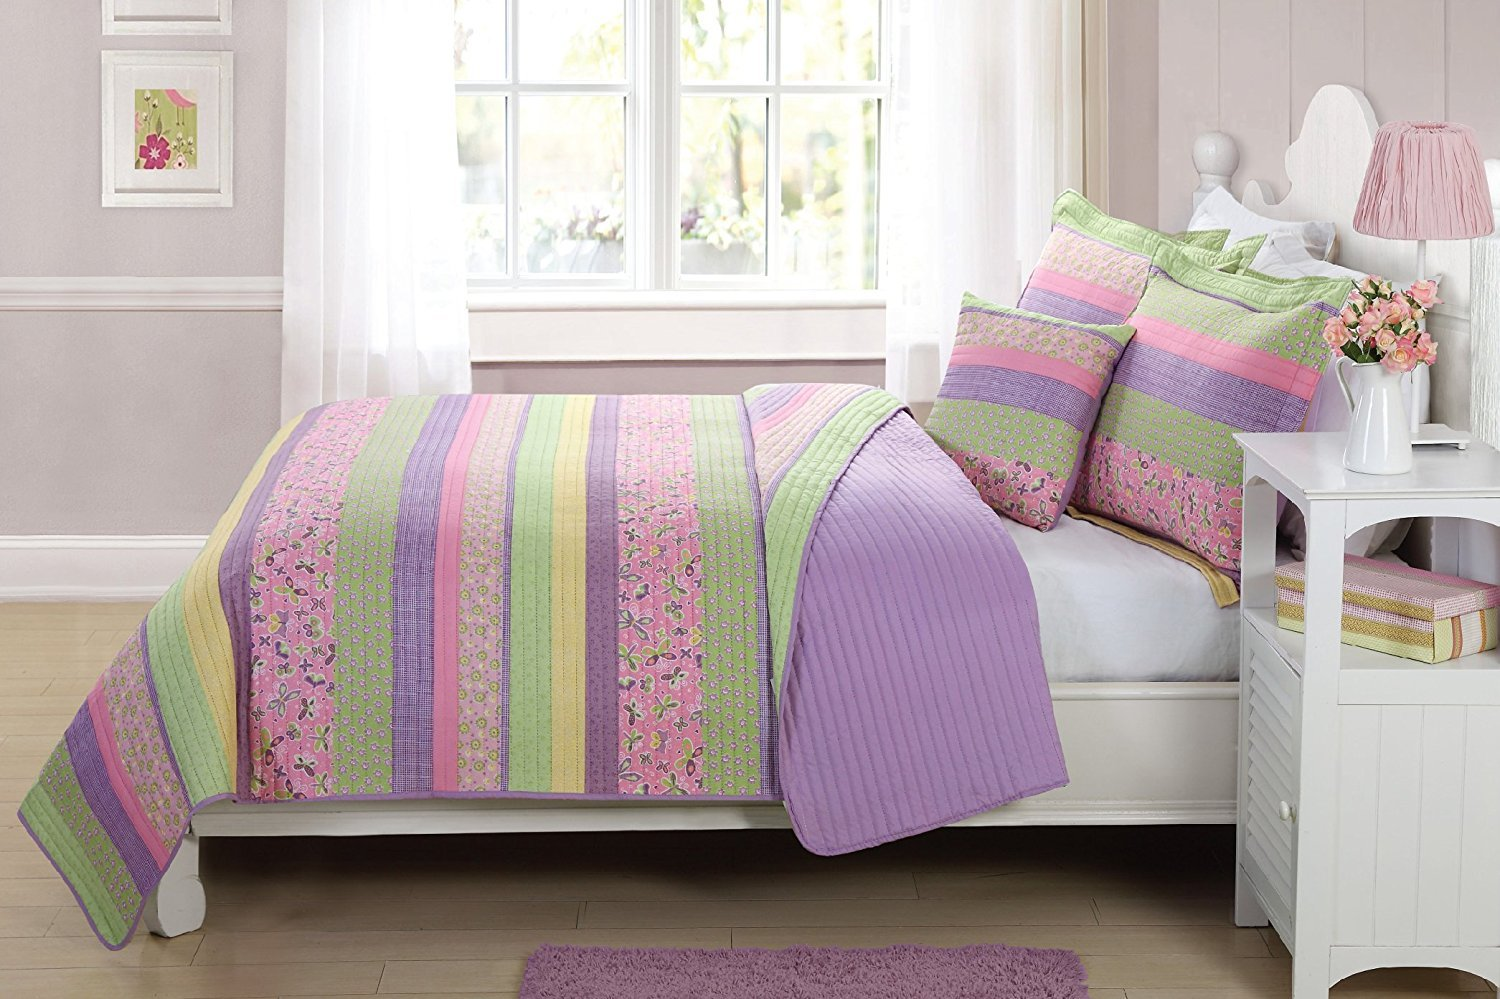 Full/Queen 4pc Bedspread Set for Girls/Teens Stripes Butterflies Flowers Lavender Yellow Lime Green Pink New by Linen Plus